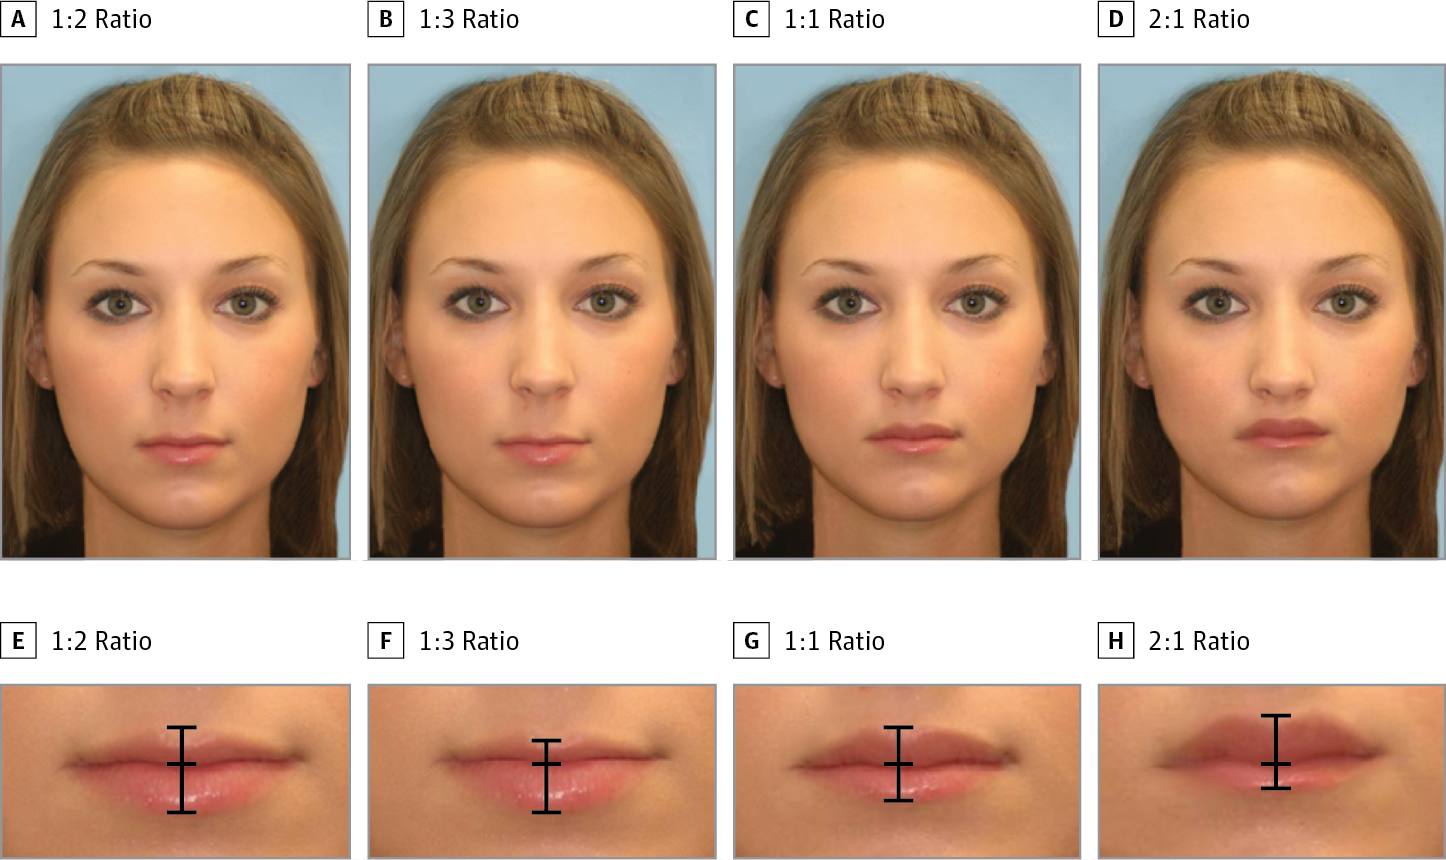 Phase 2: Generating Upper to Lower Lip Ratios